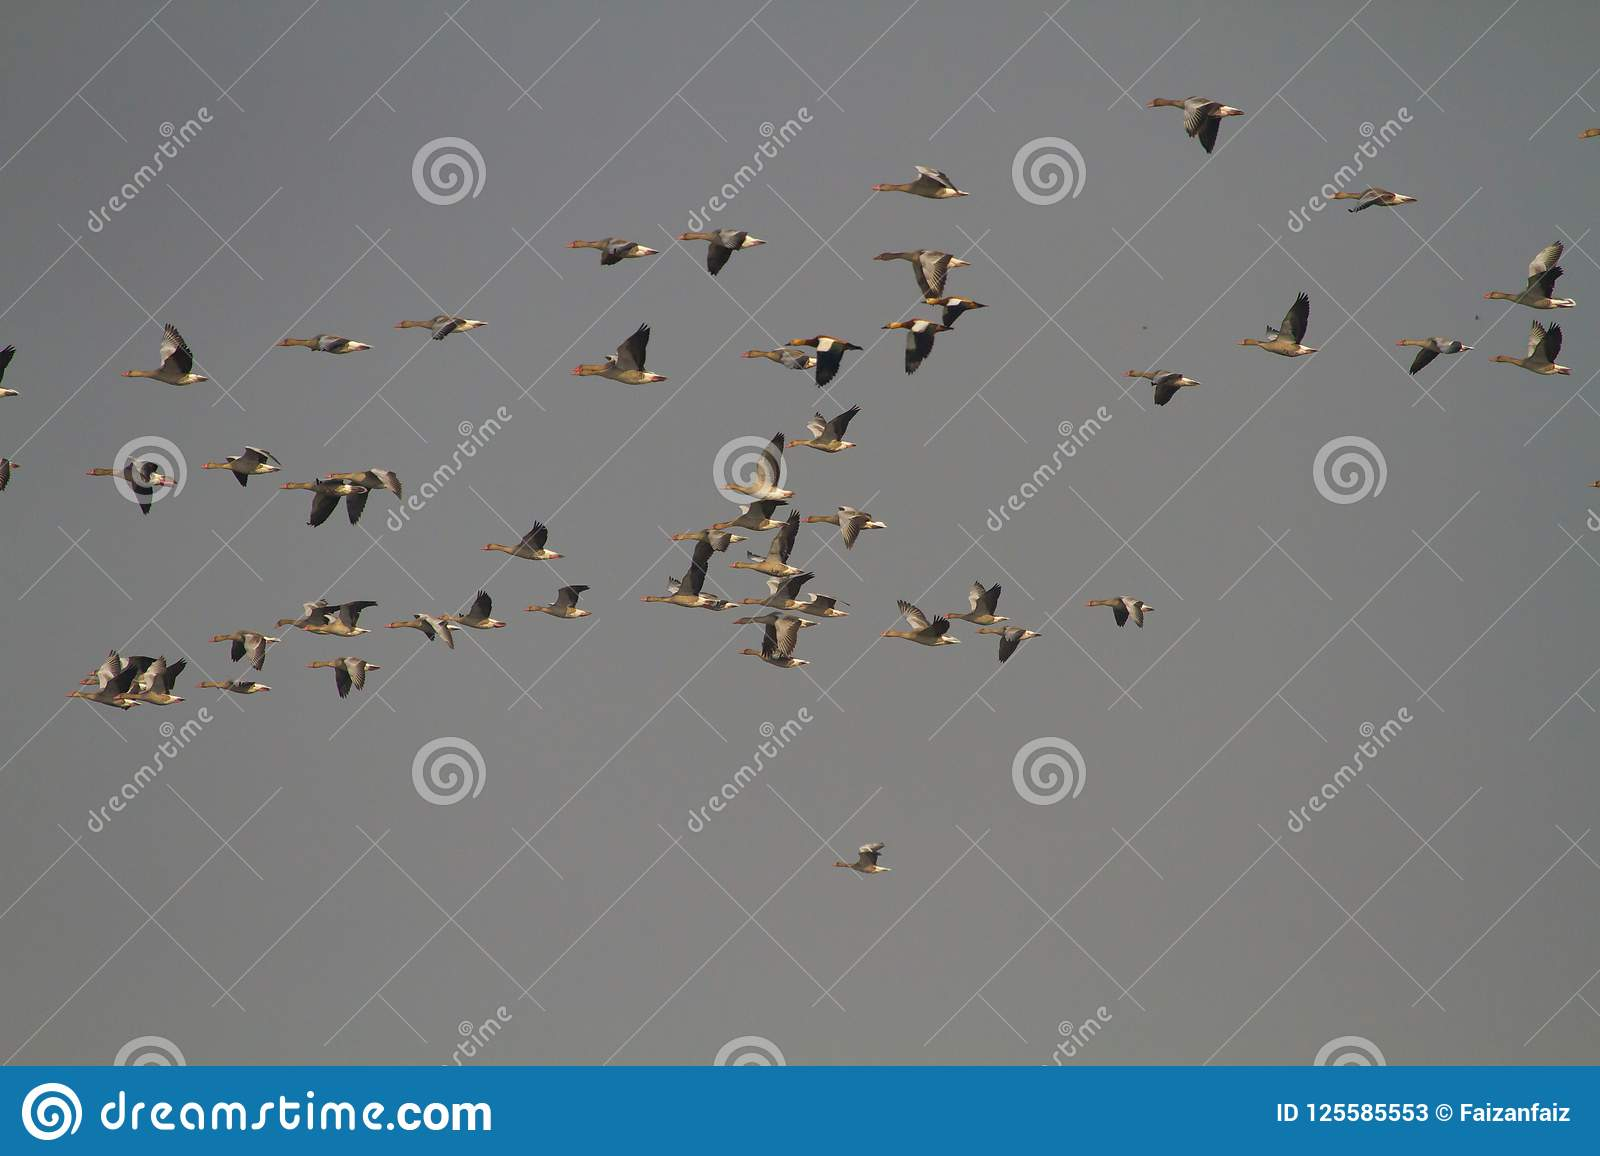 Geese Flying In Formation With Blue Sky Stock Image - Image